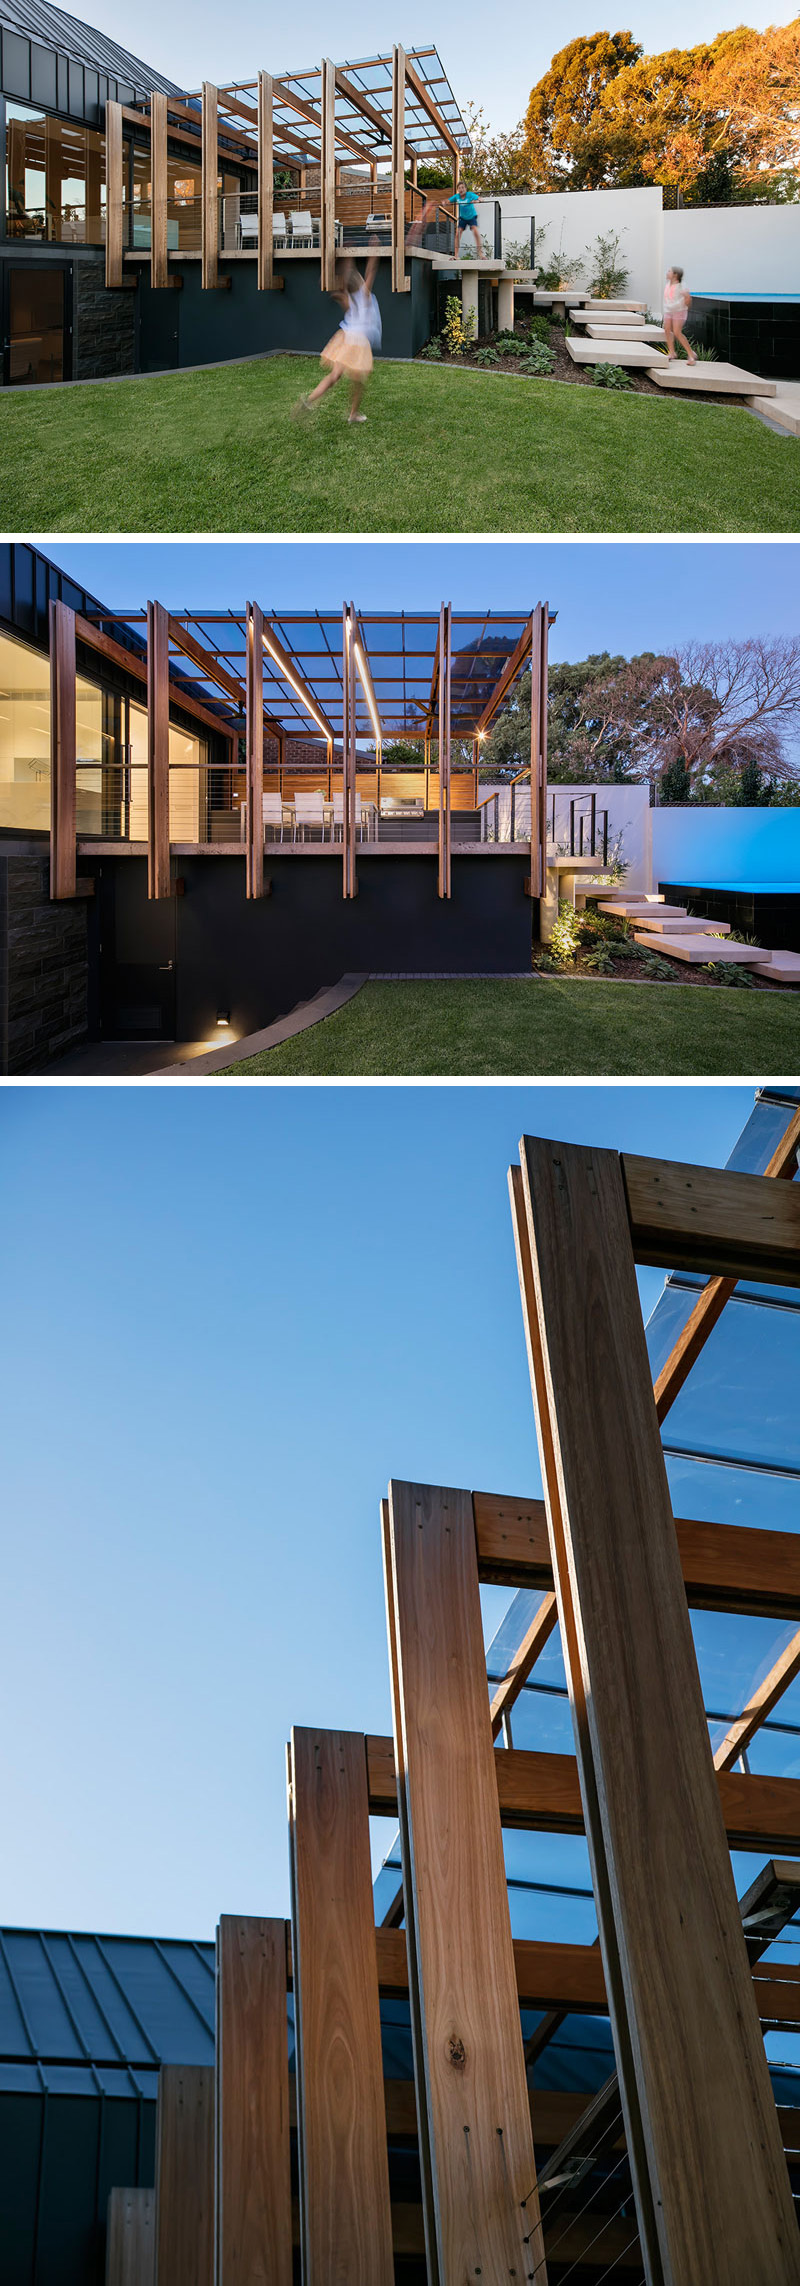 This house has an outdoor entertaining area with a modern pergola and deck, offering both light and shelter. The glass roof sitting on top of the wood fins protects furniture and people from getting wet when it rains, and the wood fins includes LED strips built into them to create a soft light for the outdoor space.